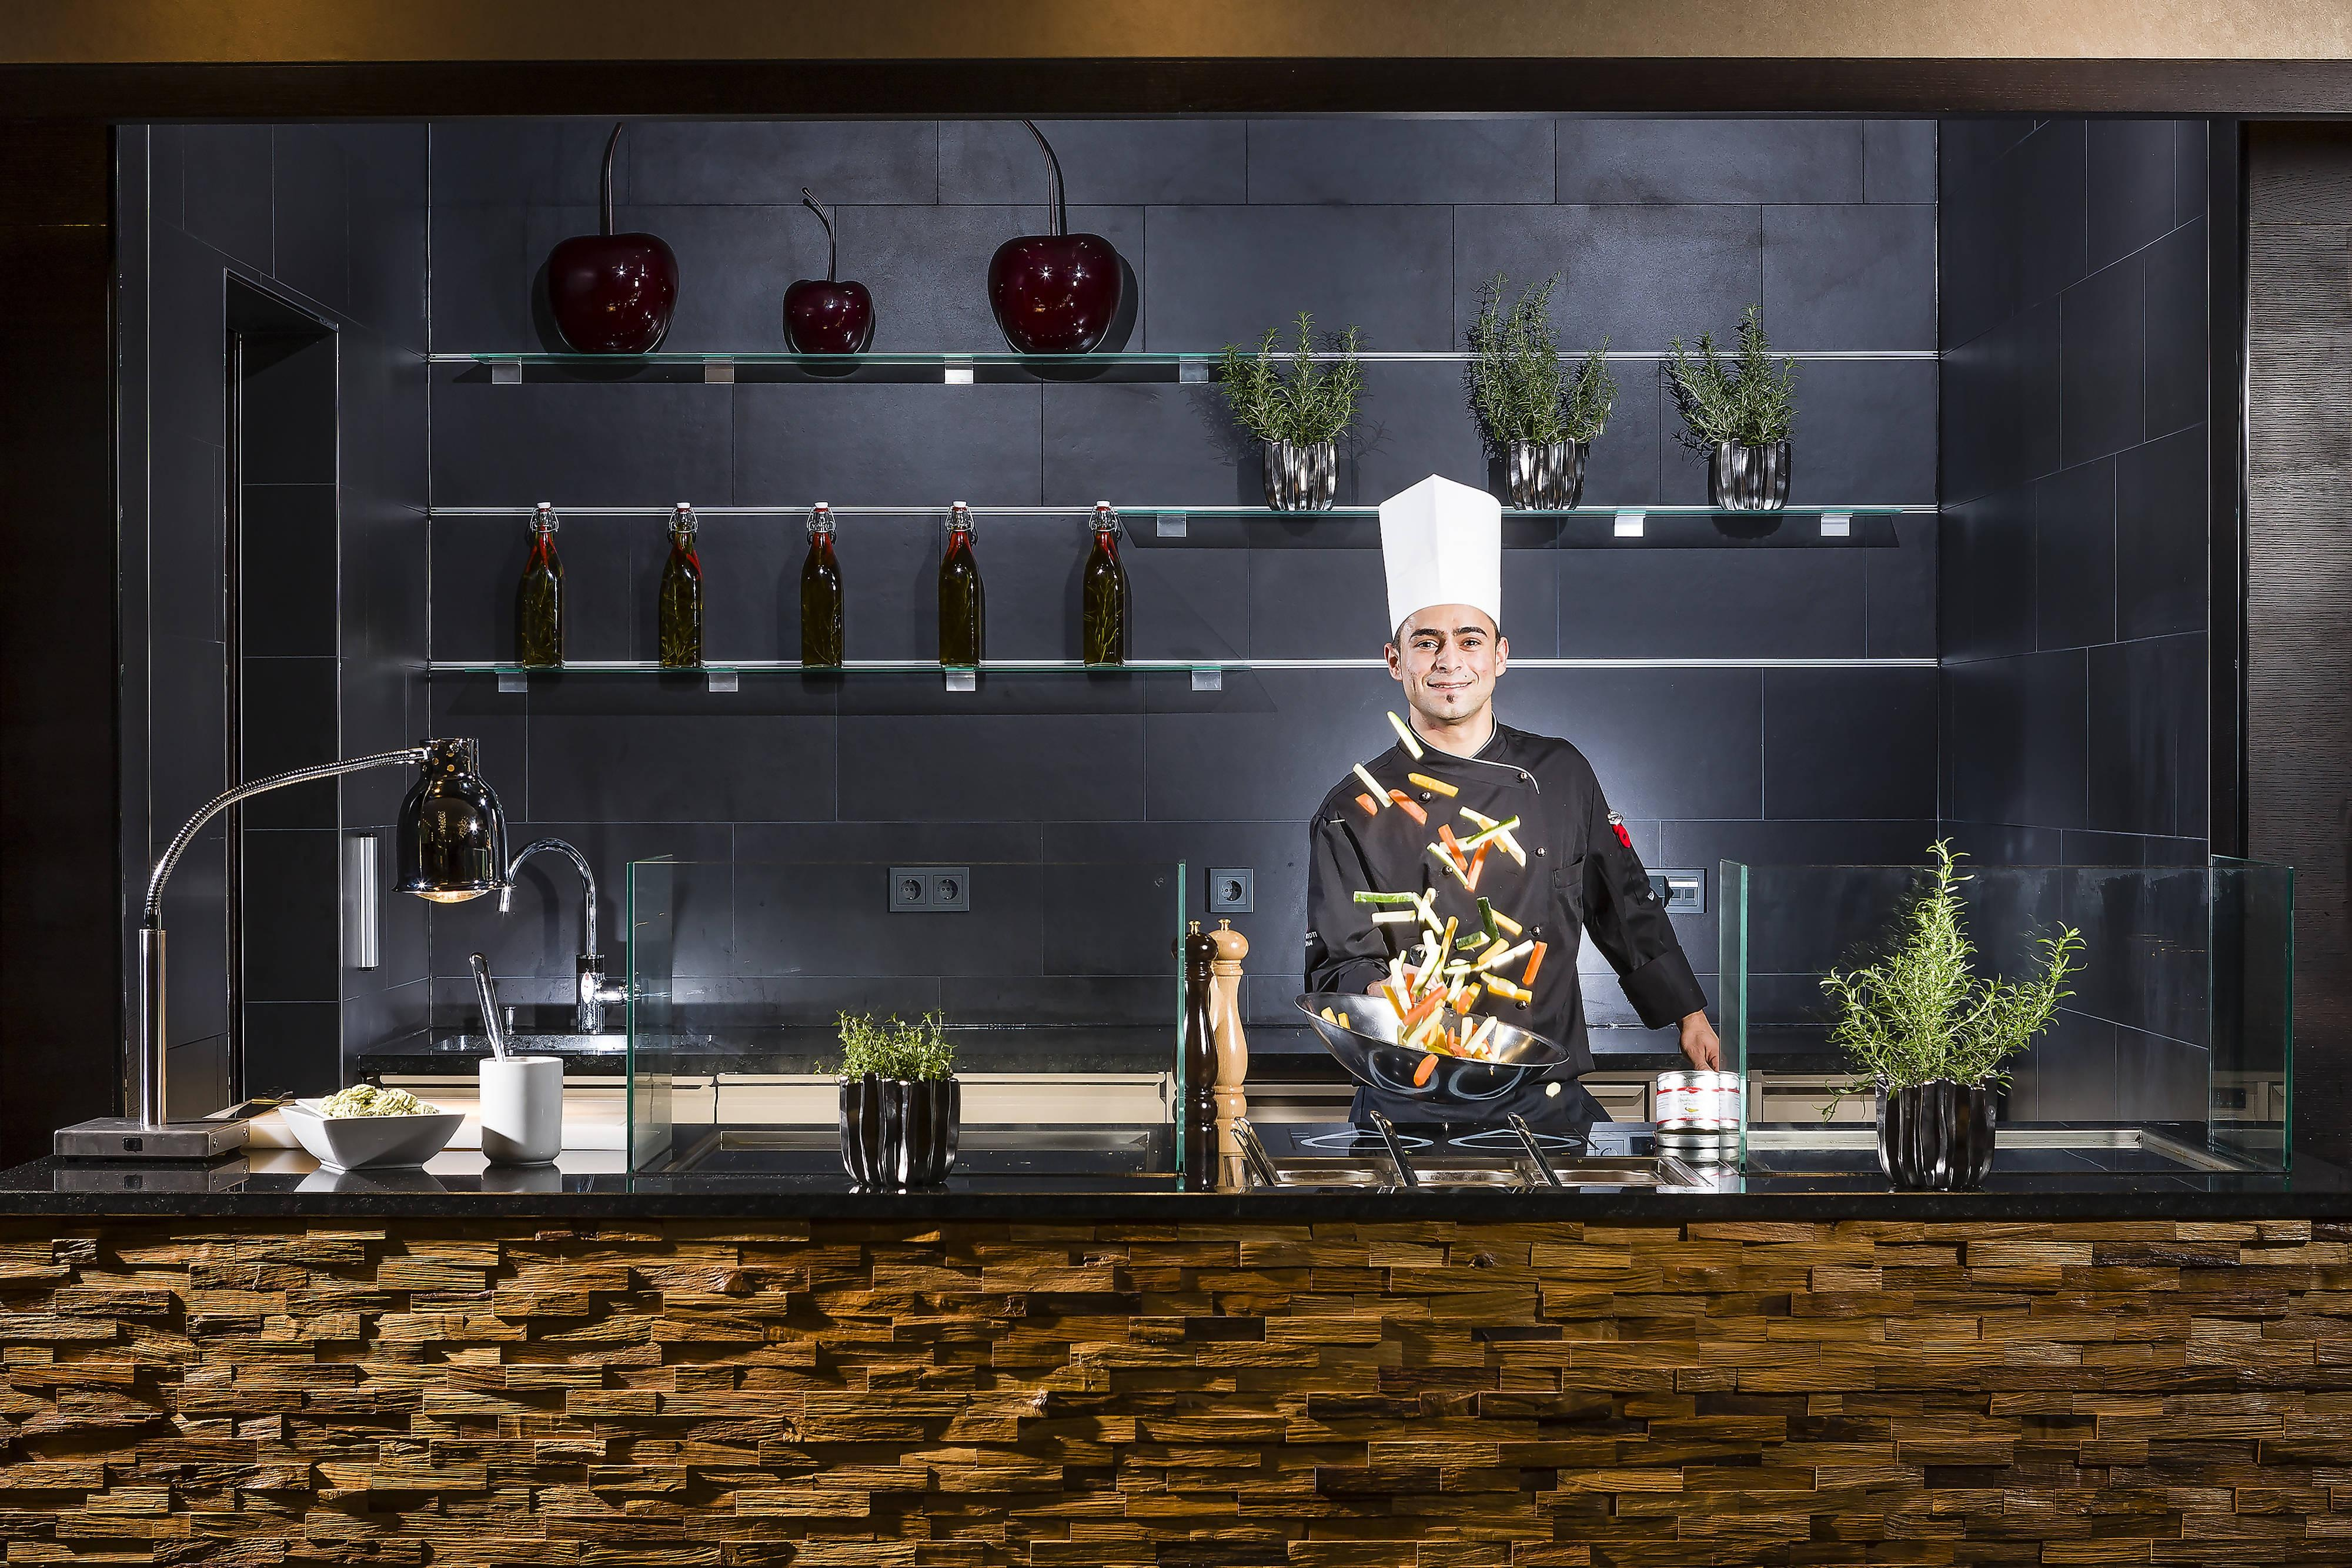 Vienna restaurant with show cooking